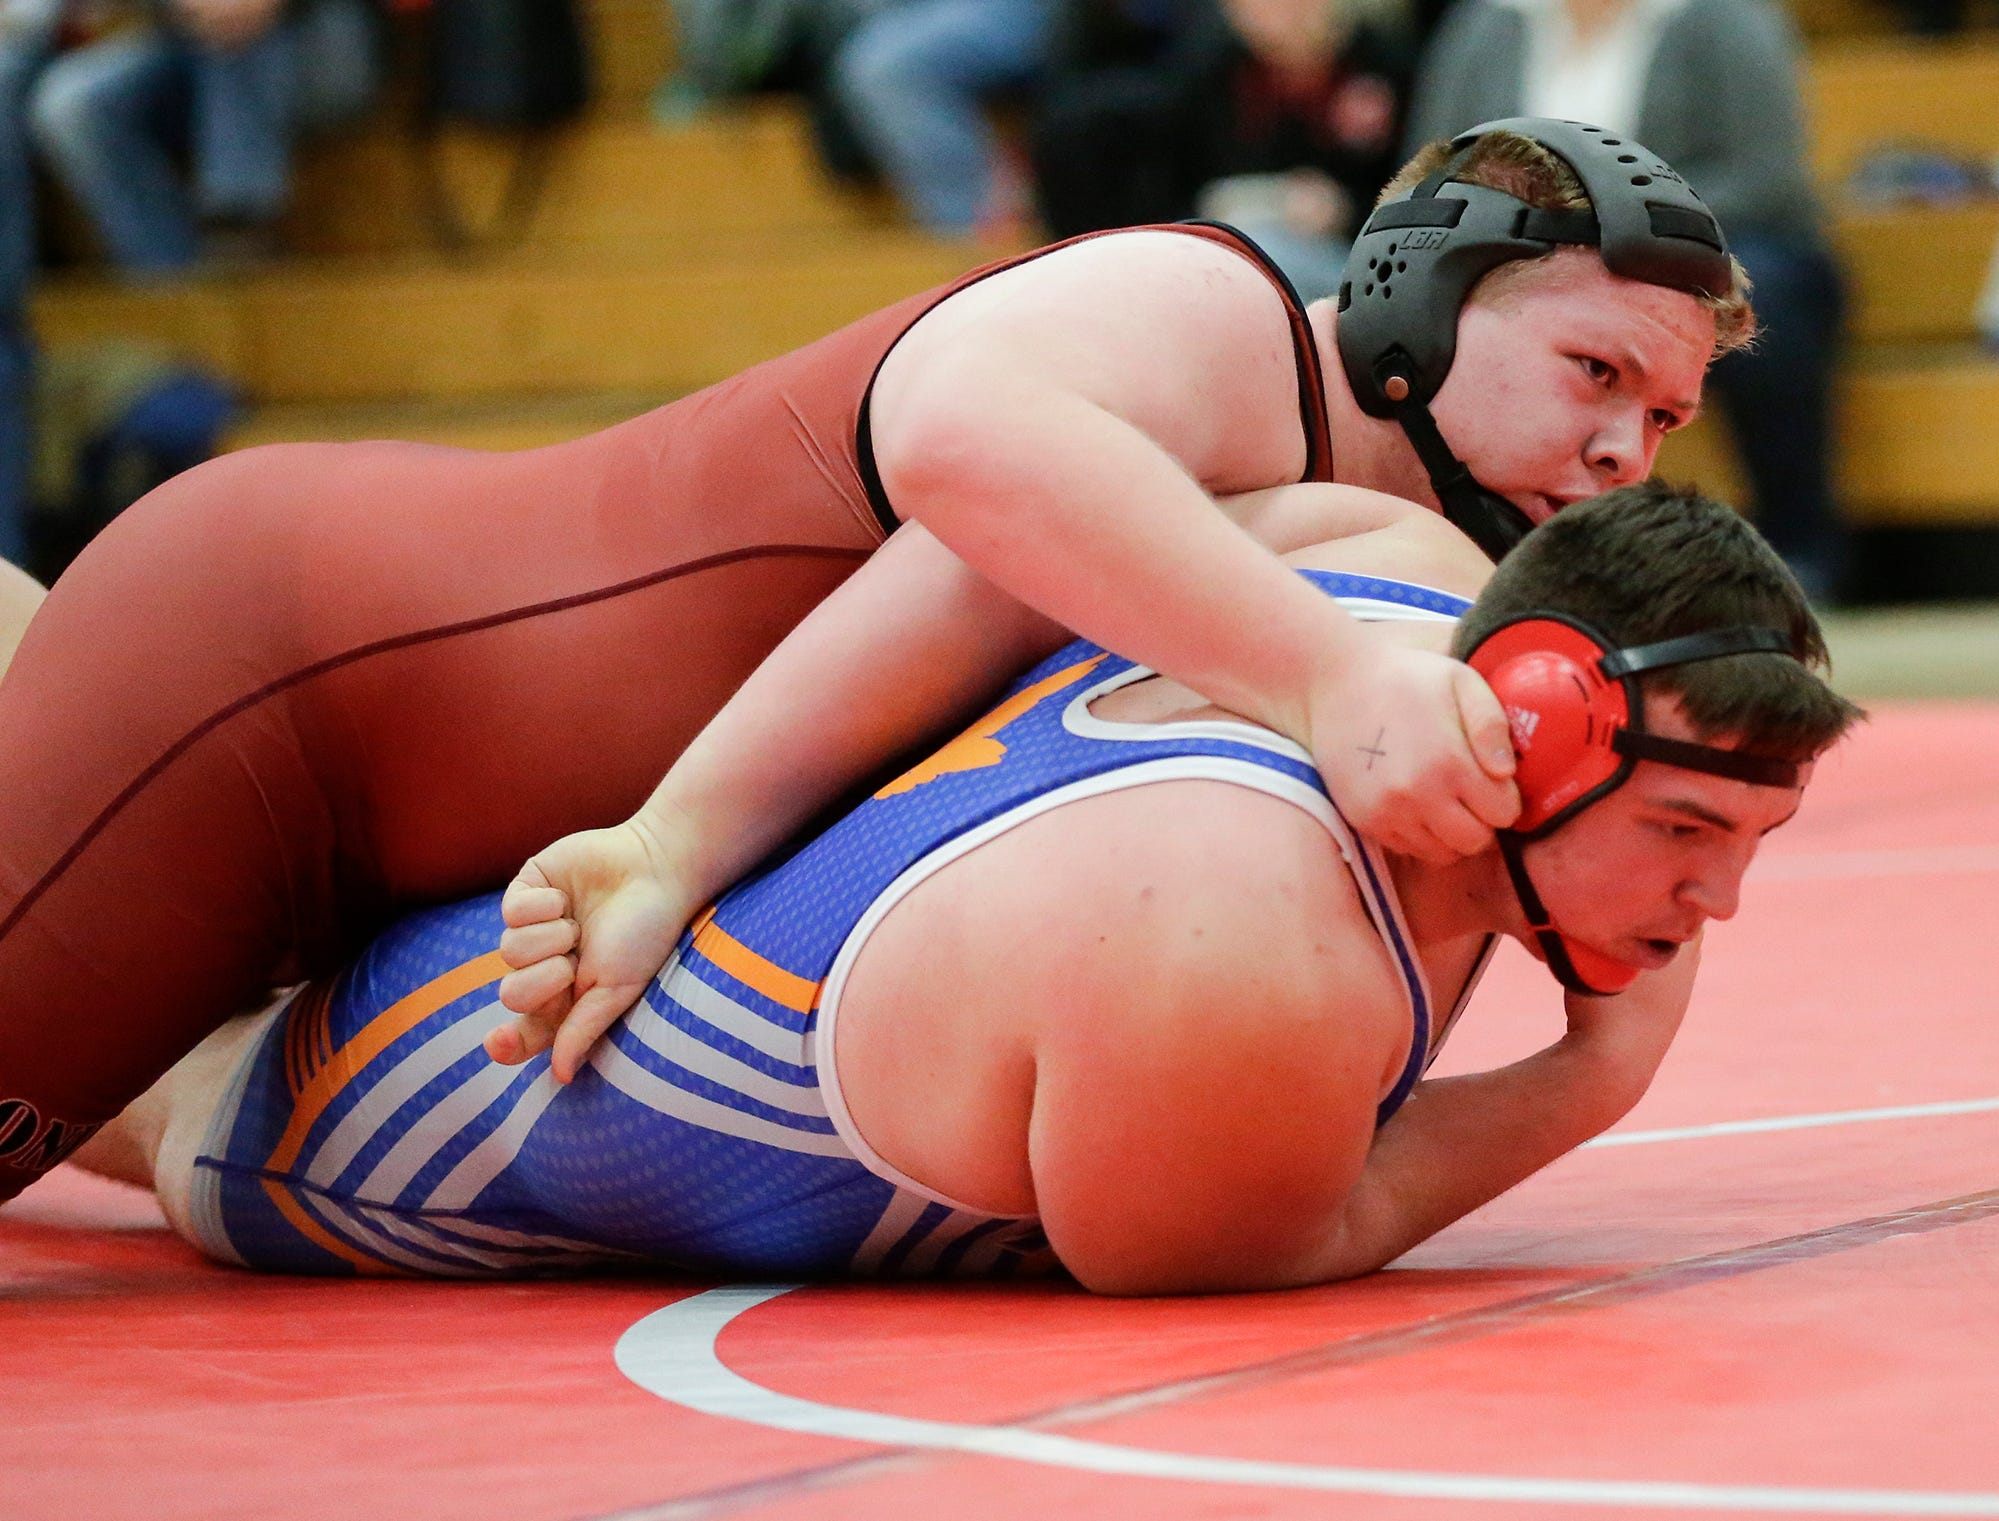 Fond du Lac High School's Joe Schmitz wrestles Appleton West High School's Keaven Hanser in a 285-pound match during the Fox Valley Association wrestling championship meet held in Fond du Lac, Saturday, Feb. 2, 2019. Schmitz won the match by a pin.